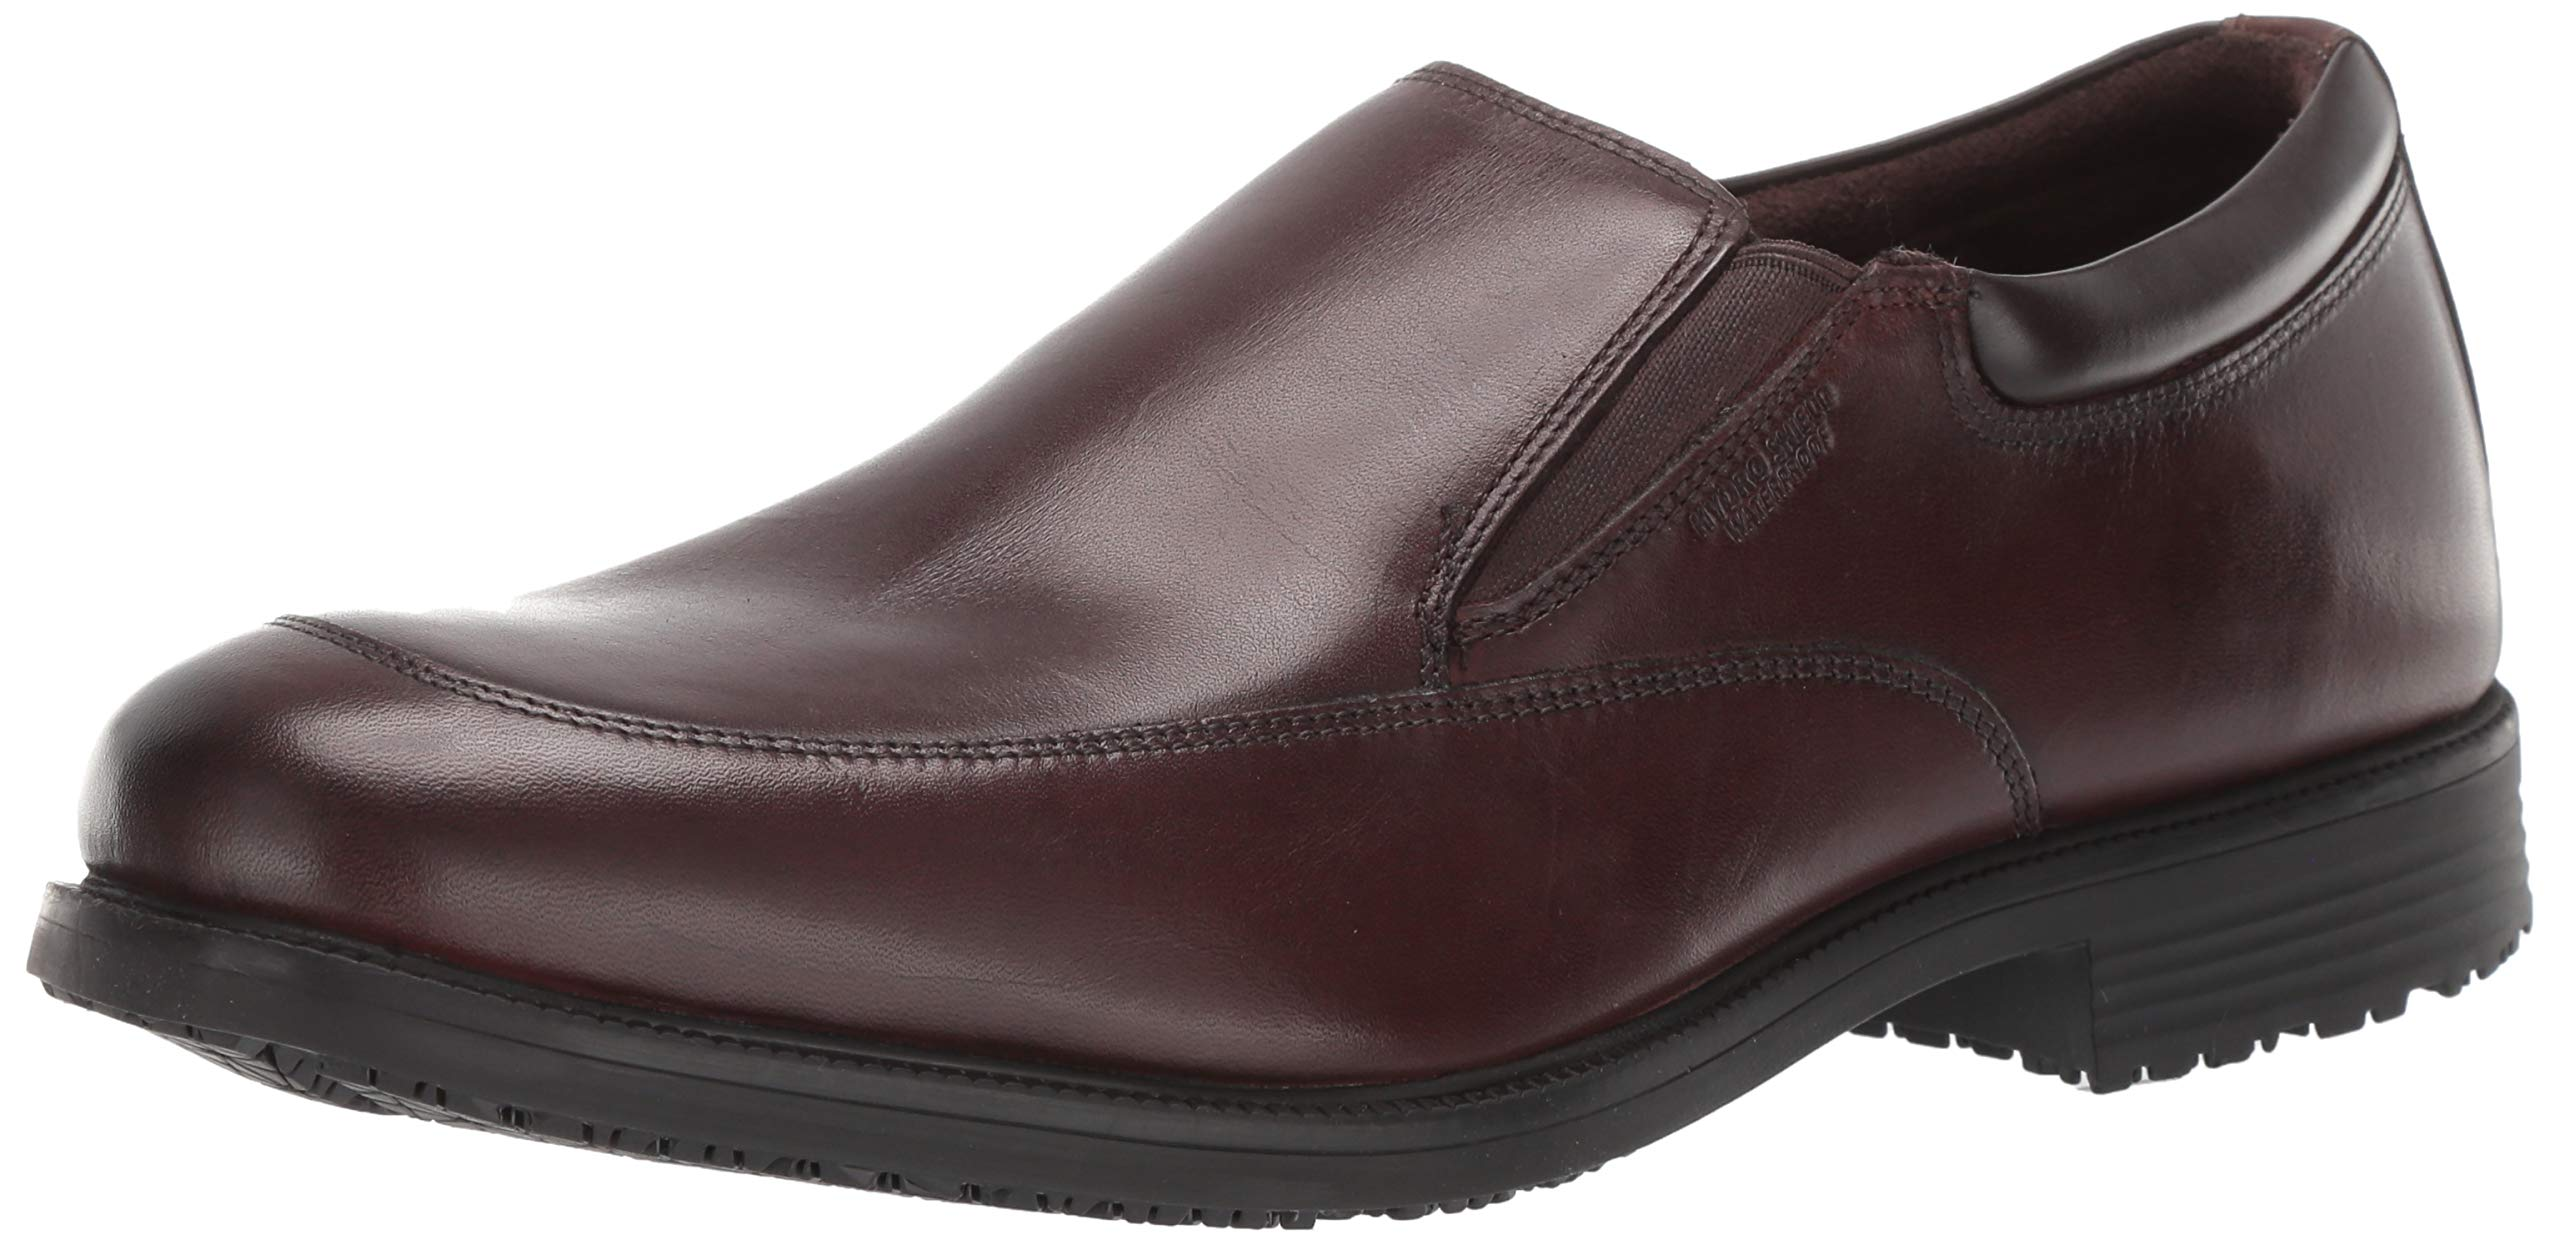 Rockport Men's Lead The Pack Slip On Loafer, Cocoa Brown, 9.5 W US by Rockport (Image #1)